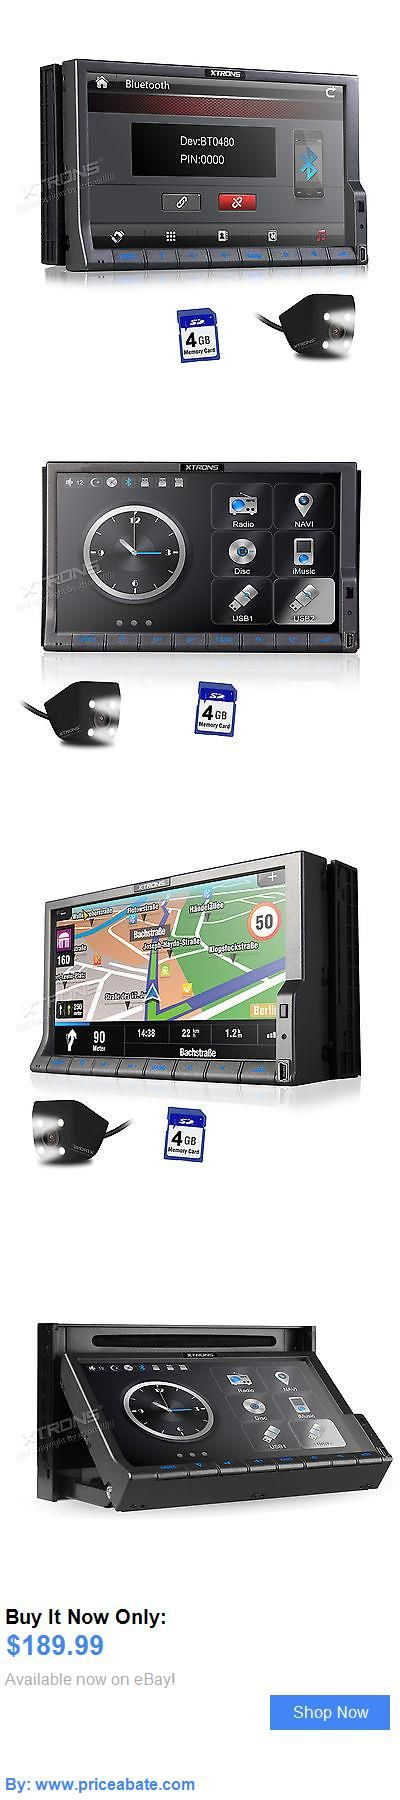 Vehicle Electronics And GPS: 7 Touch Gps Navigation 2Din 1080P Hd Car Stereo Dvd Player Bluetooth Mp3 Camera BUY IT NOW ONLY: $189.99 #priceabateVehicleElectronicsAndGPS OR #priceabate